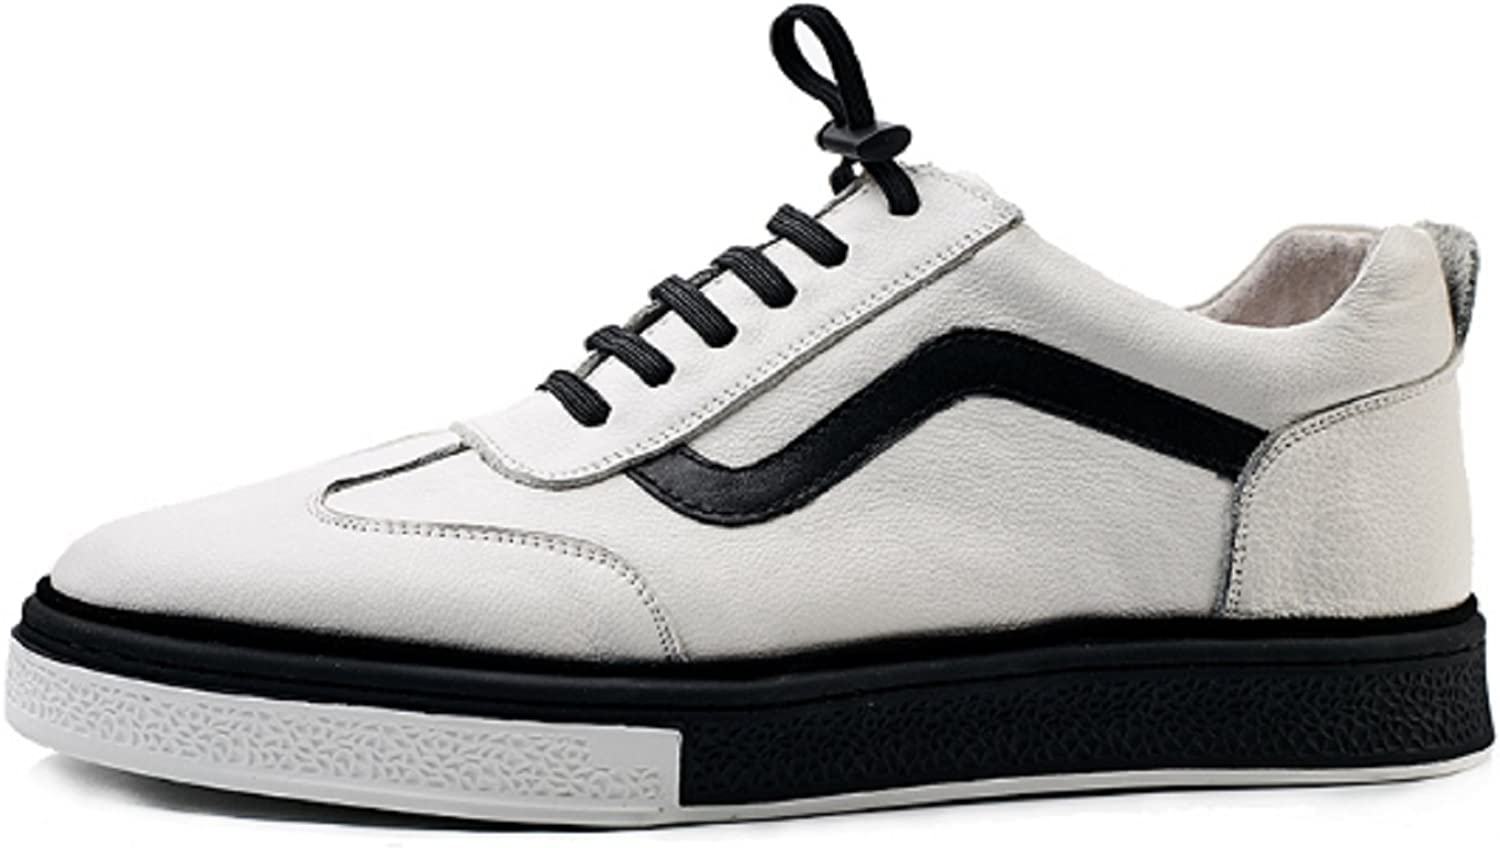 HAPPYSHOP Men's Real Leather Sports shoes Comfort Casual Sneakers White shoes Board shoes